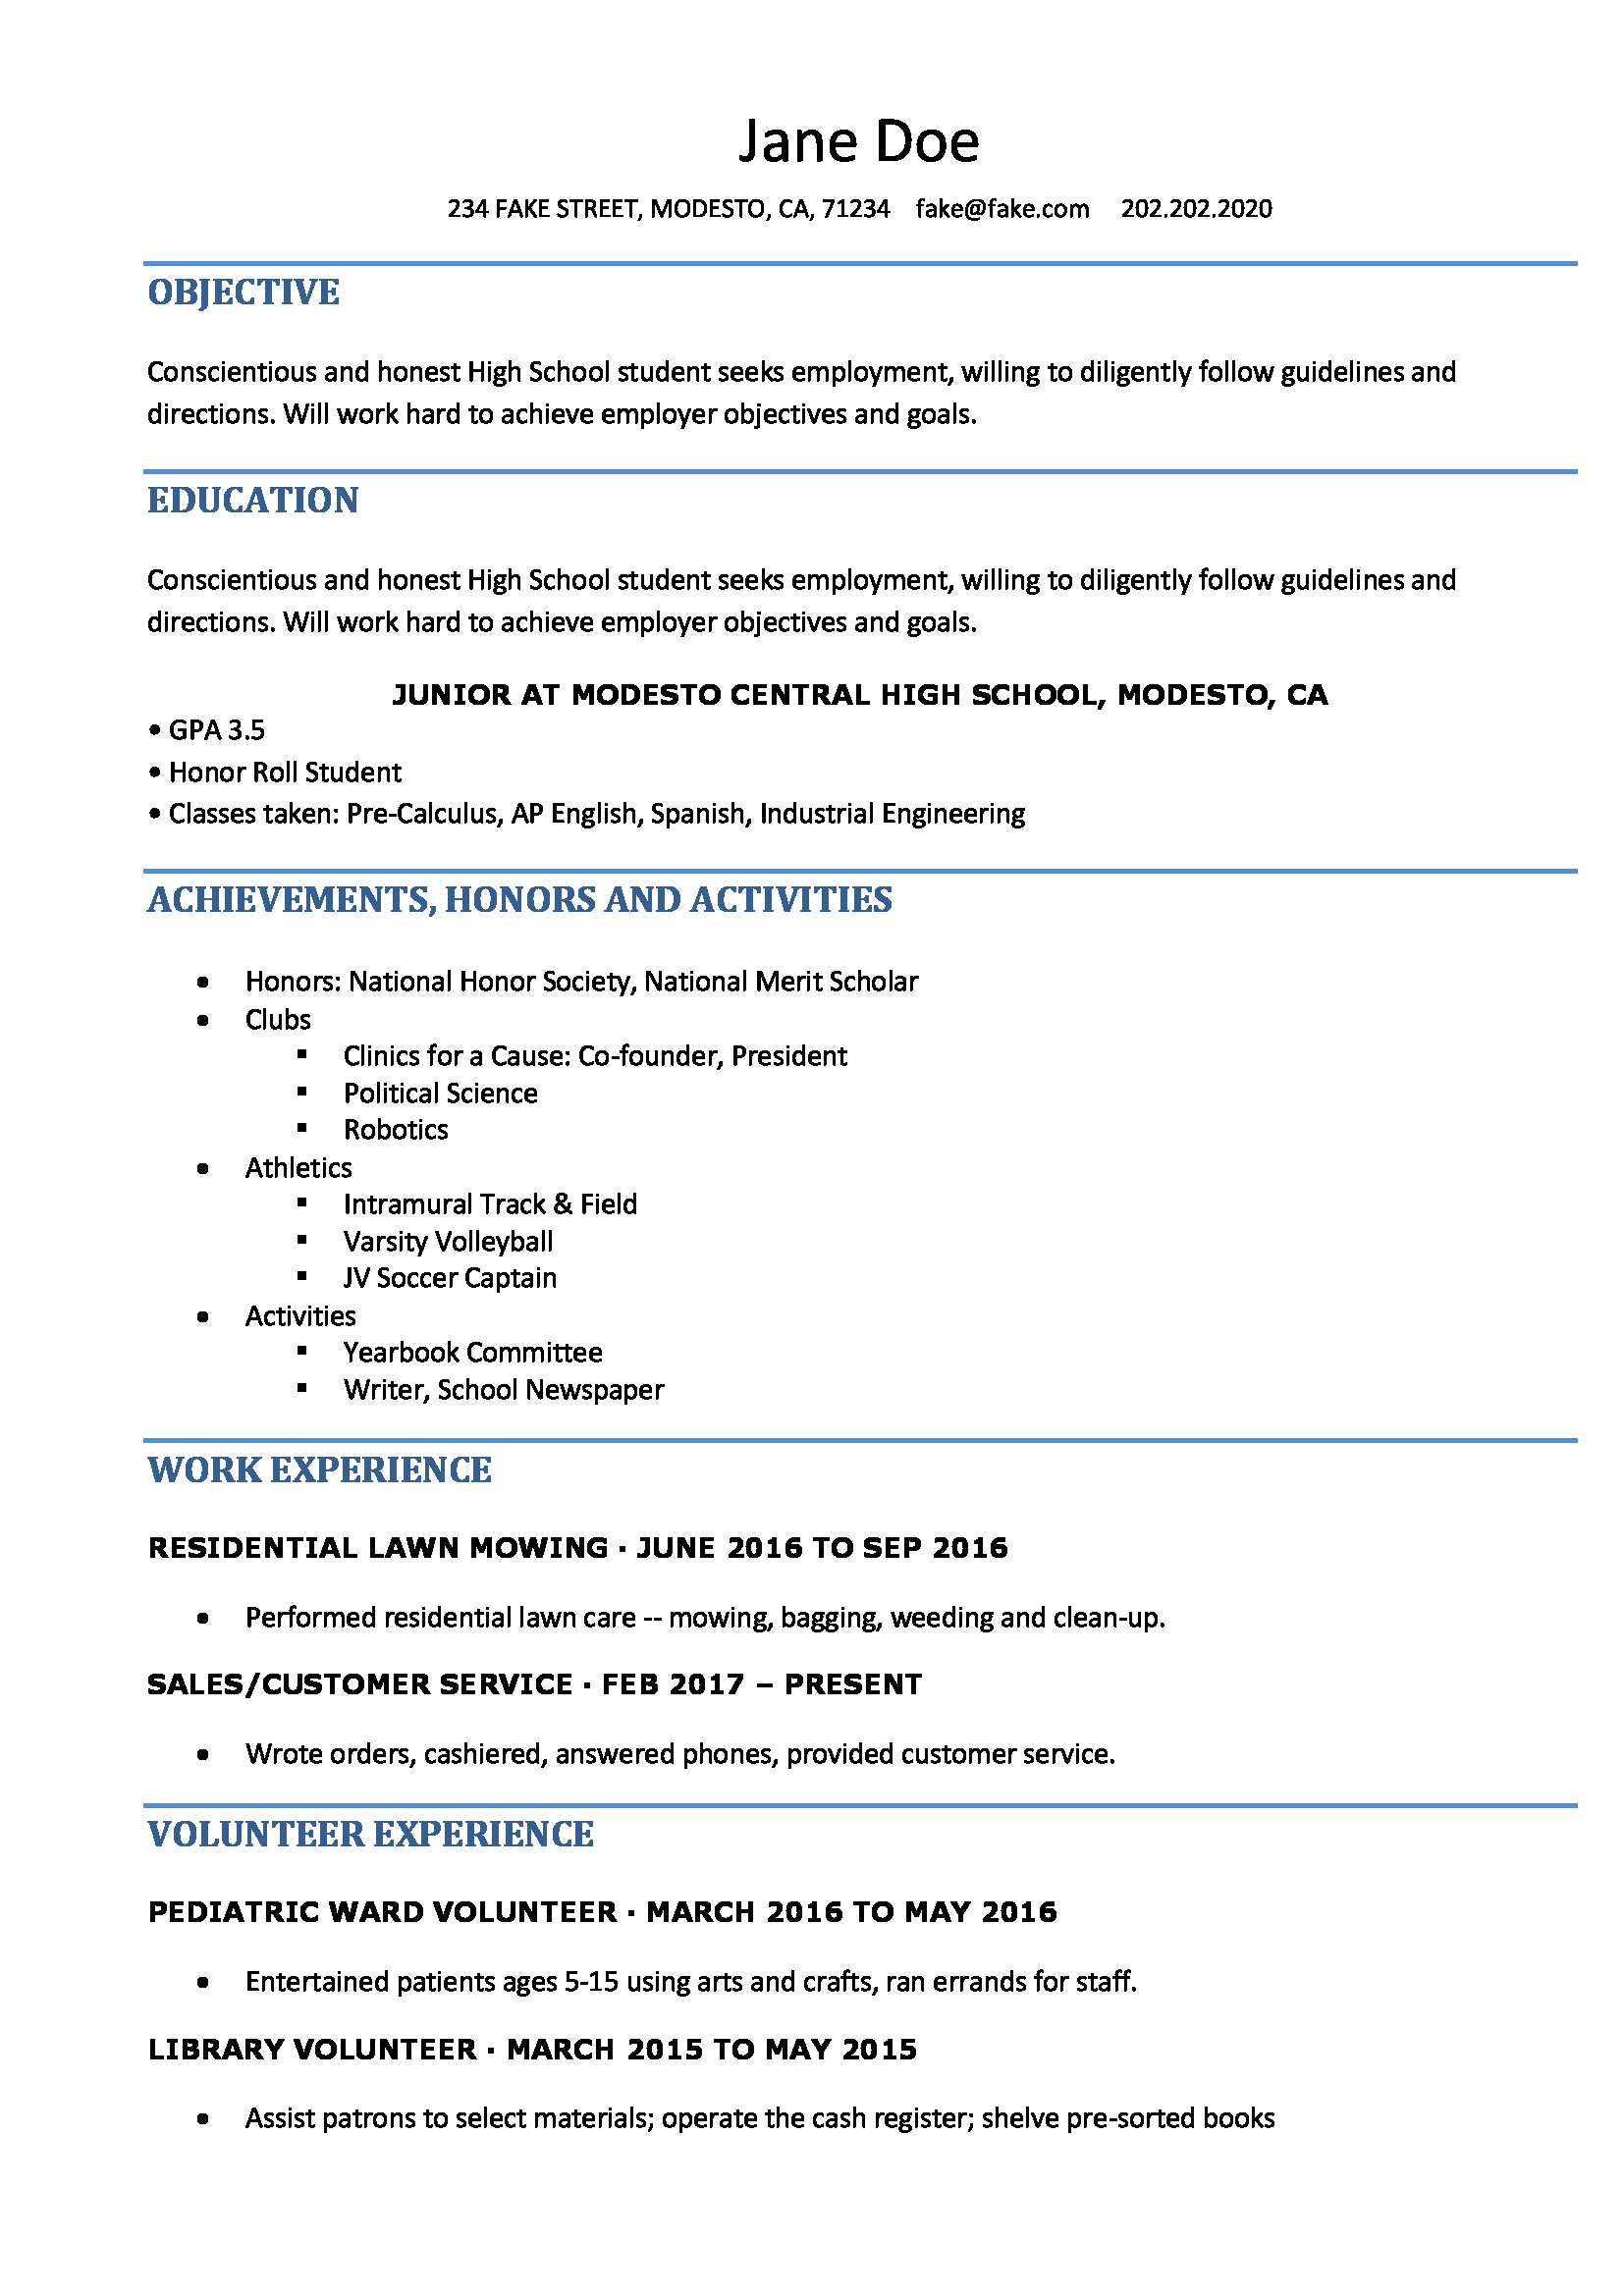 Resume Format For High School Students ResumeFormat